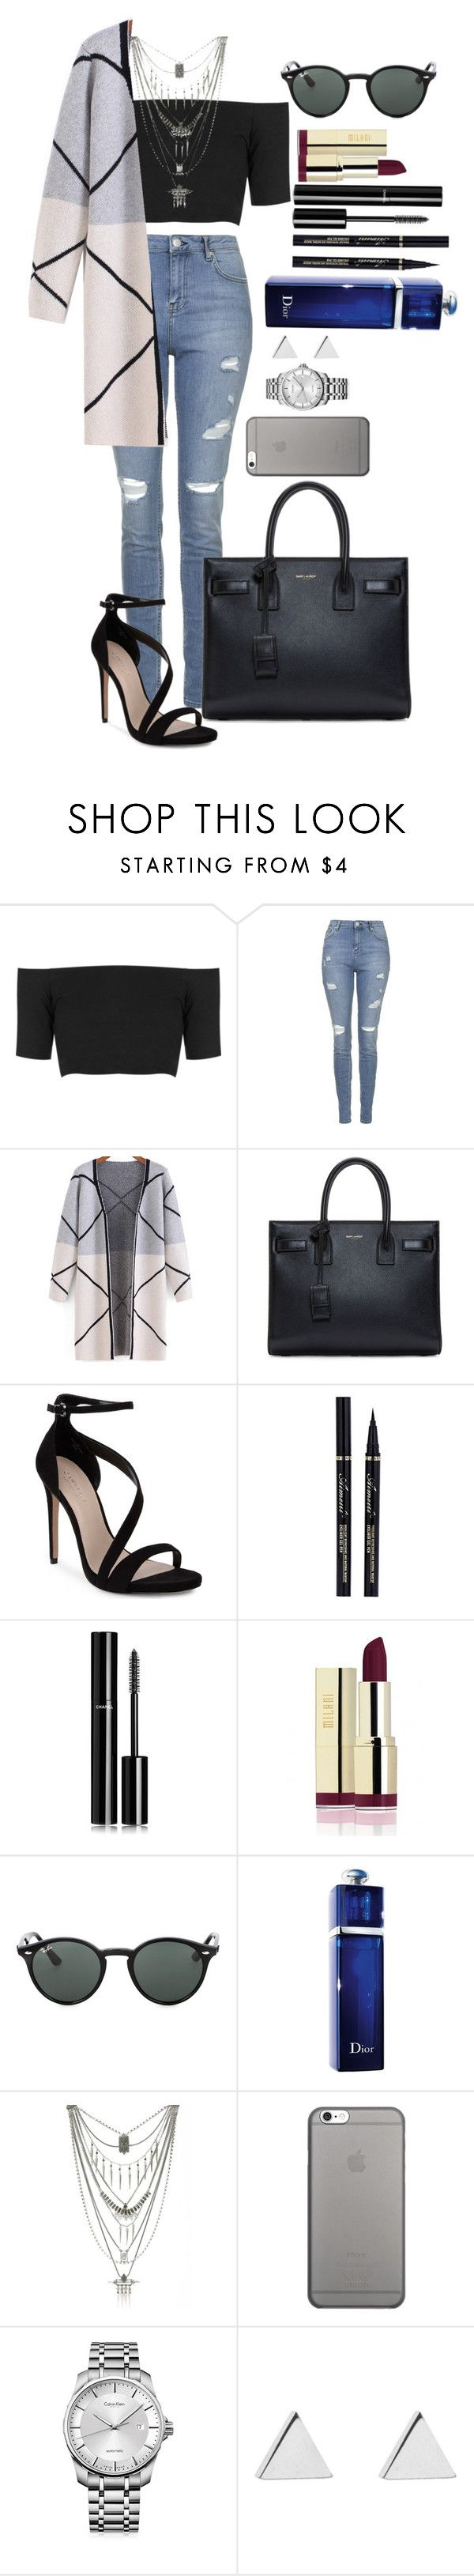 """Untitled #1454"" by fabianarveloc on Polyvore featuring Topshop, Yves Saint Laurent, Carvela, Chanel, Ray-Ban, Christian Dior, Lucky Brand, Native Union, Calvin Klein and Jennifer Meyer Jewelry"